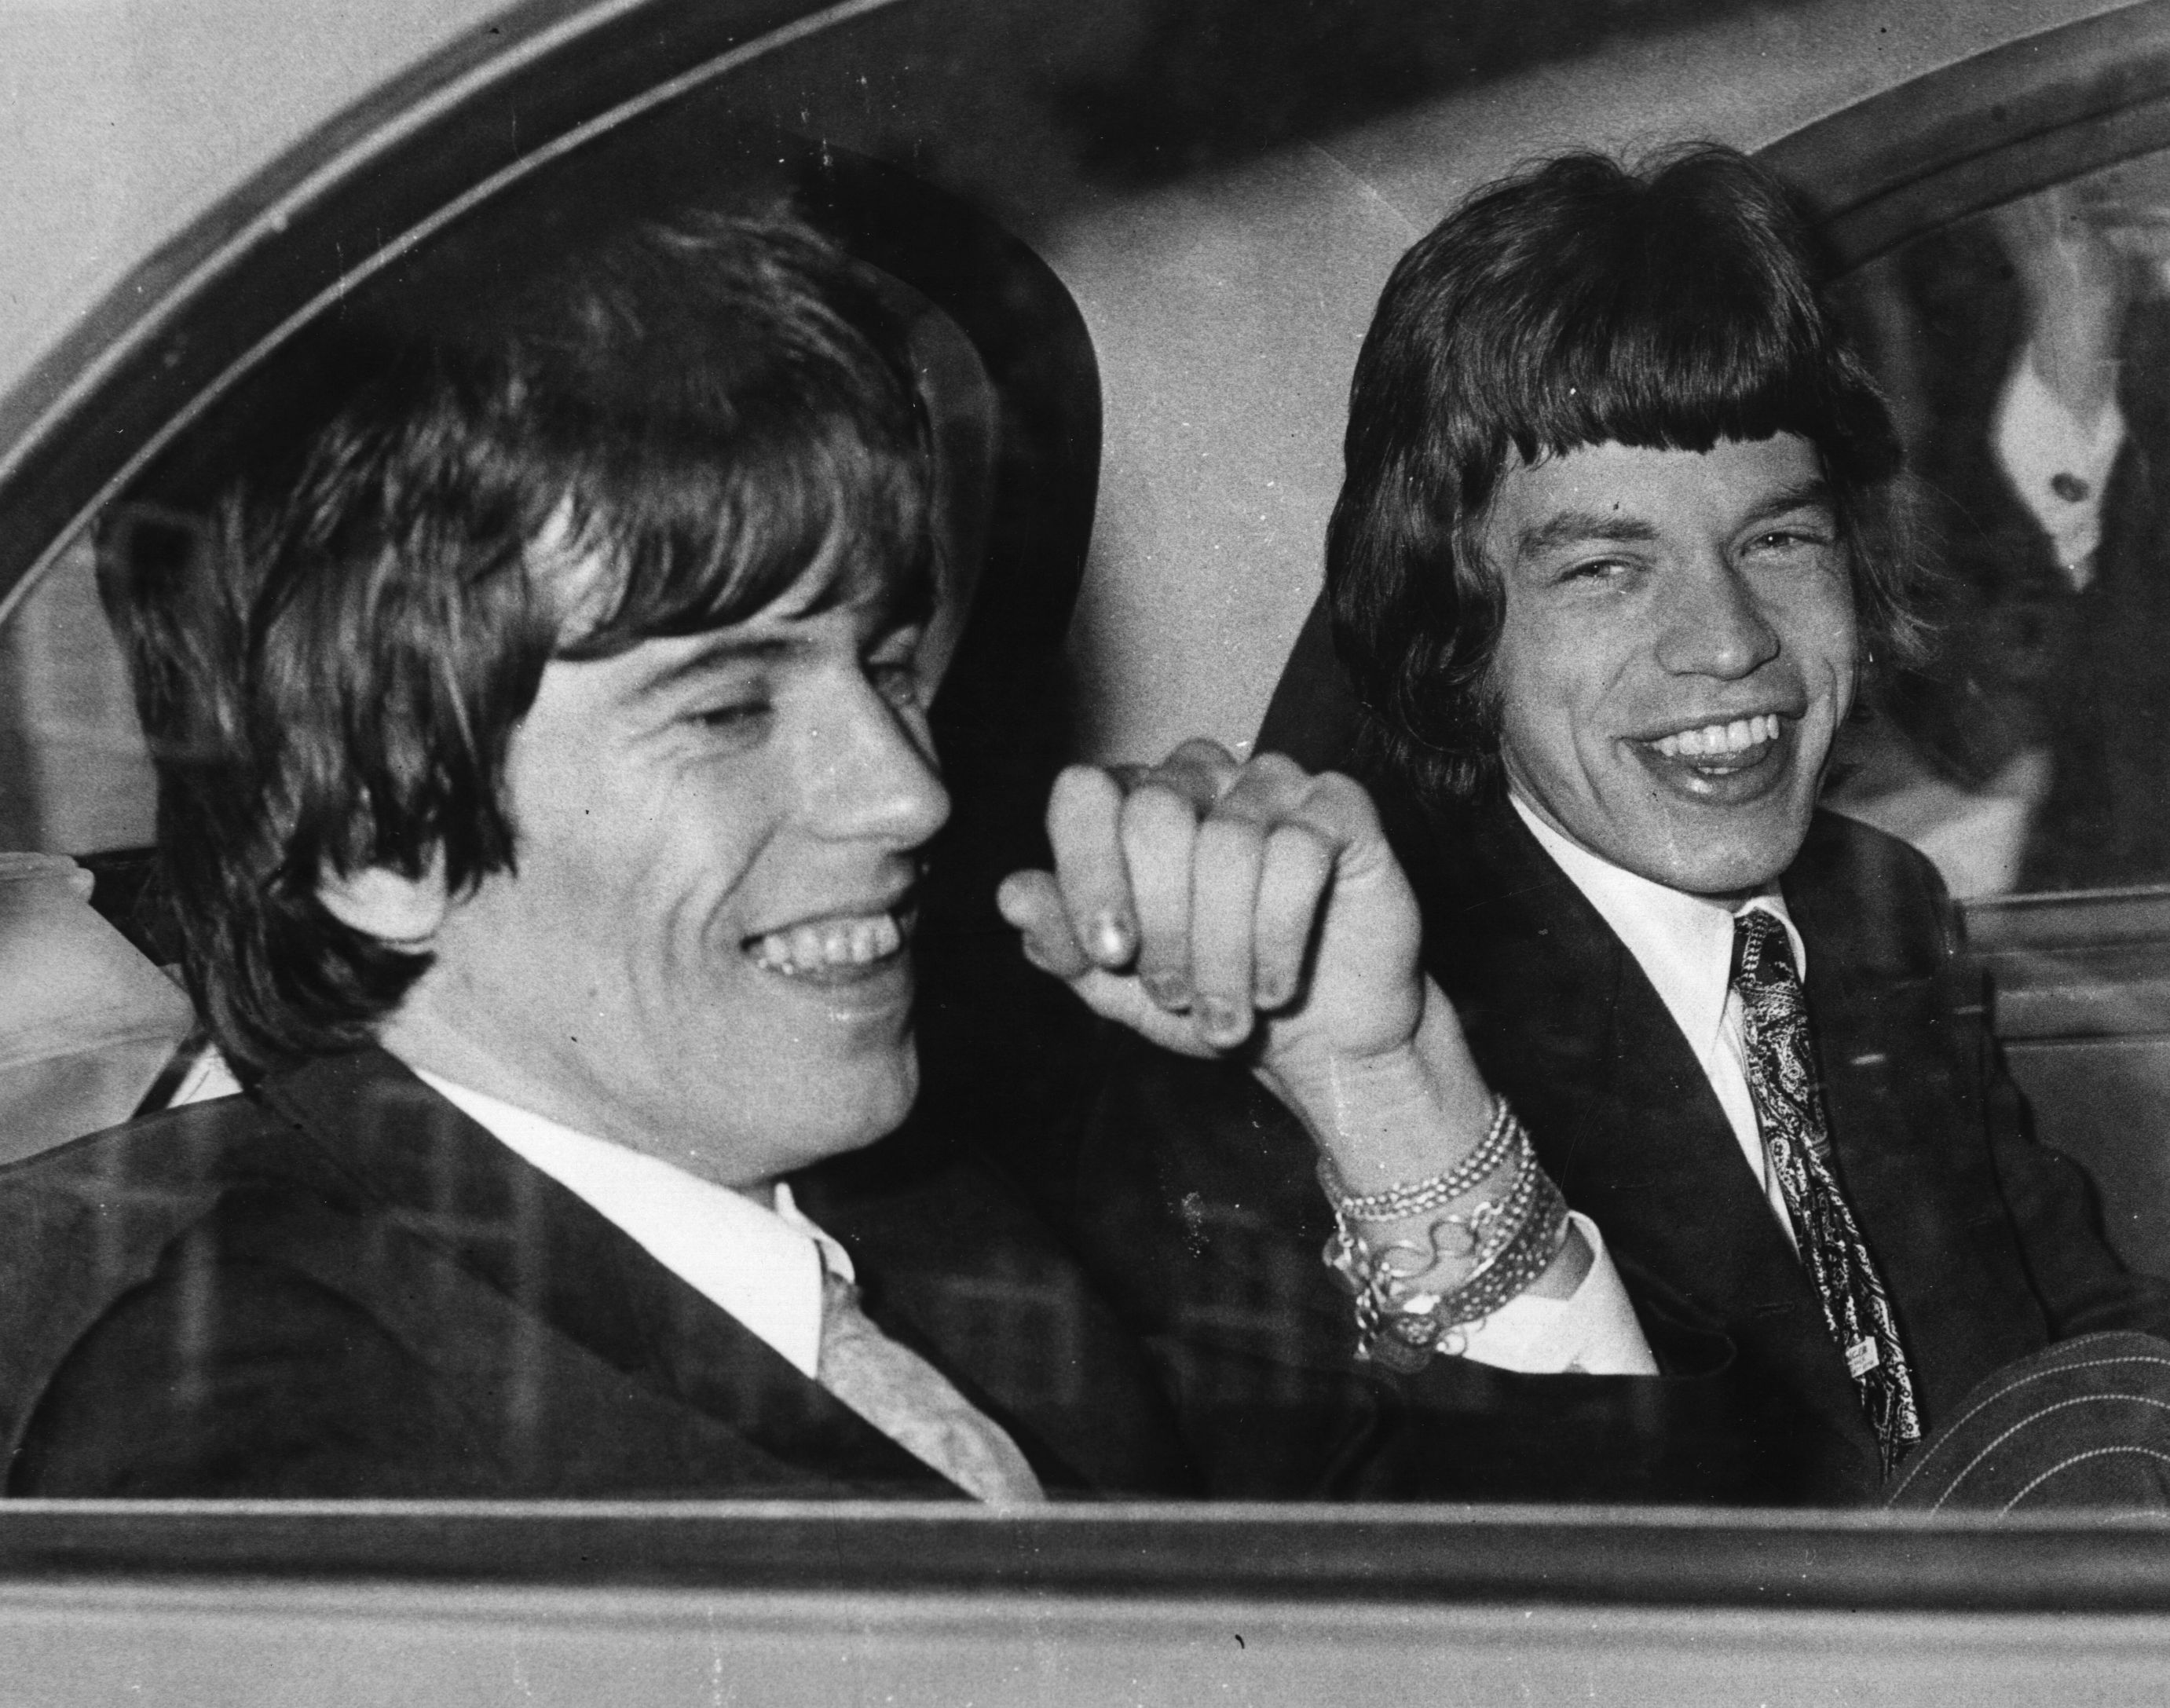 10th May 1967:  Rolling Stones songwriters, guitarist Keith Richards, left, and singer Mick Jagger share a joke in the back of a car as they leave Chichester Magistrates Court where they appeared on drug summonses.  (Photo by Ted West/Central Press/Getty Images)